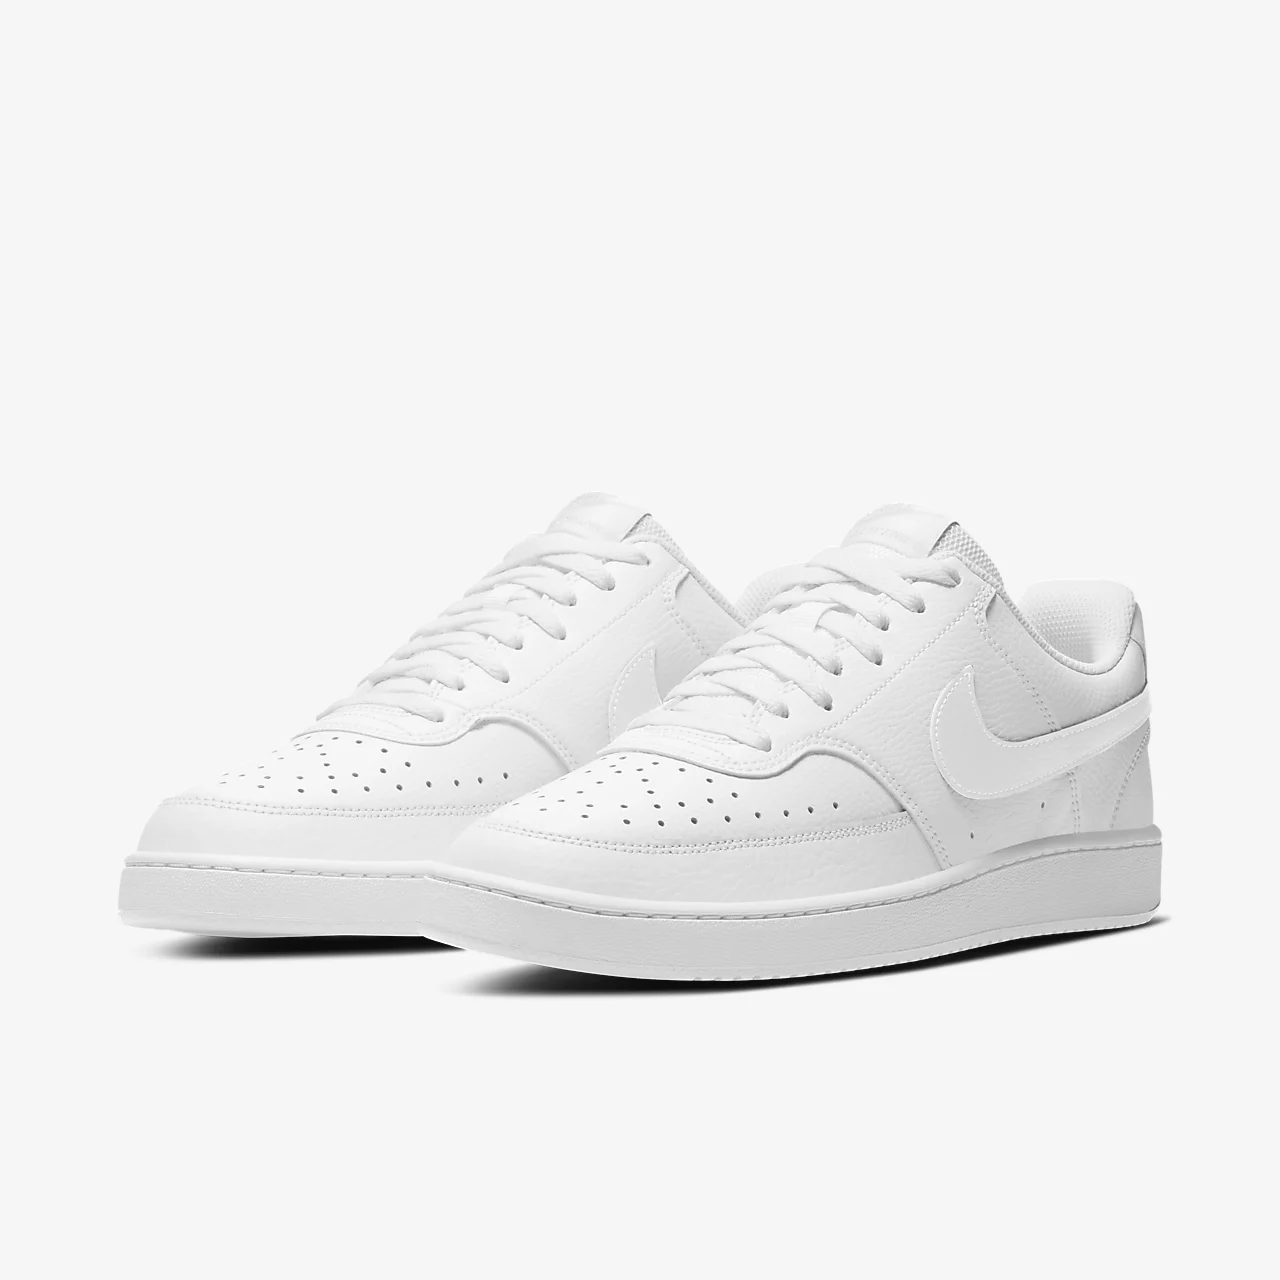 유럽직배송 나이키 NIKE Nike Court Vision Low Men's Shoe CD5463-100